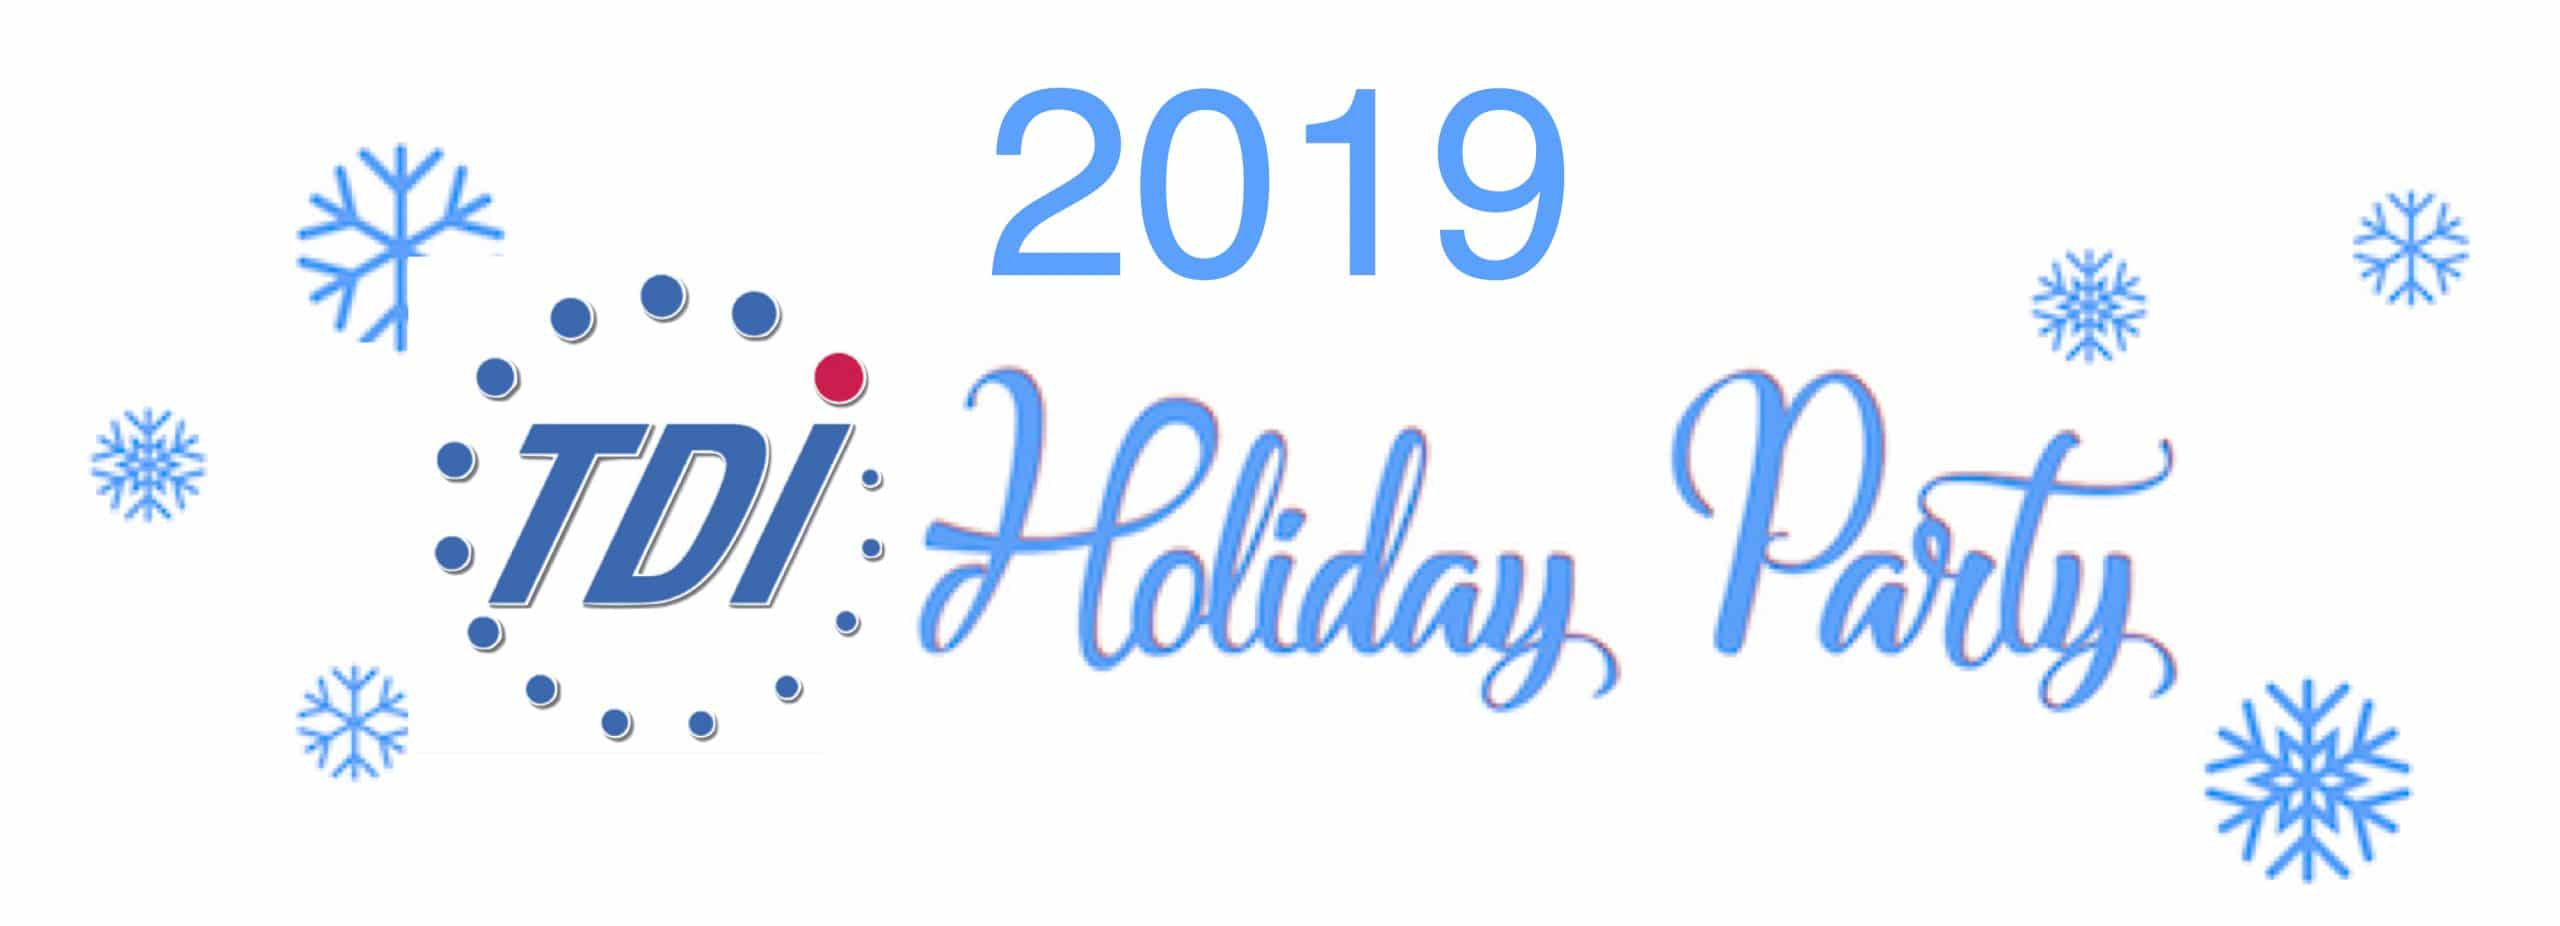 2019 (TDI logo) Holiday Party in blue cursive print with snowflakes